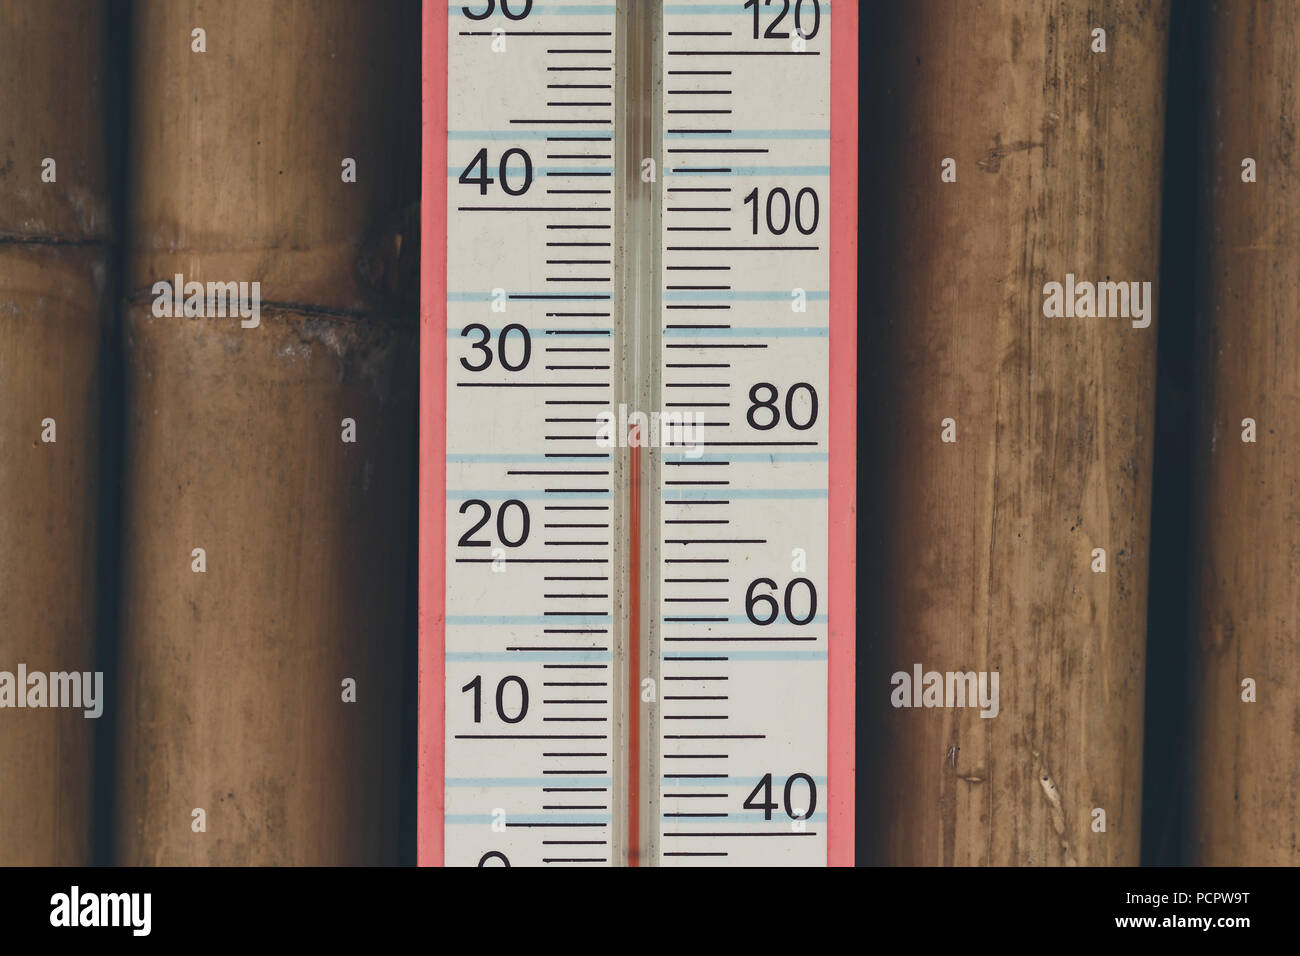 Closeup Of Household Alcohol Thermometer Showing Temperature In Degrees Celsius And Fahrenheit